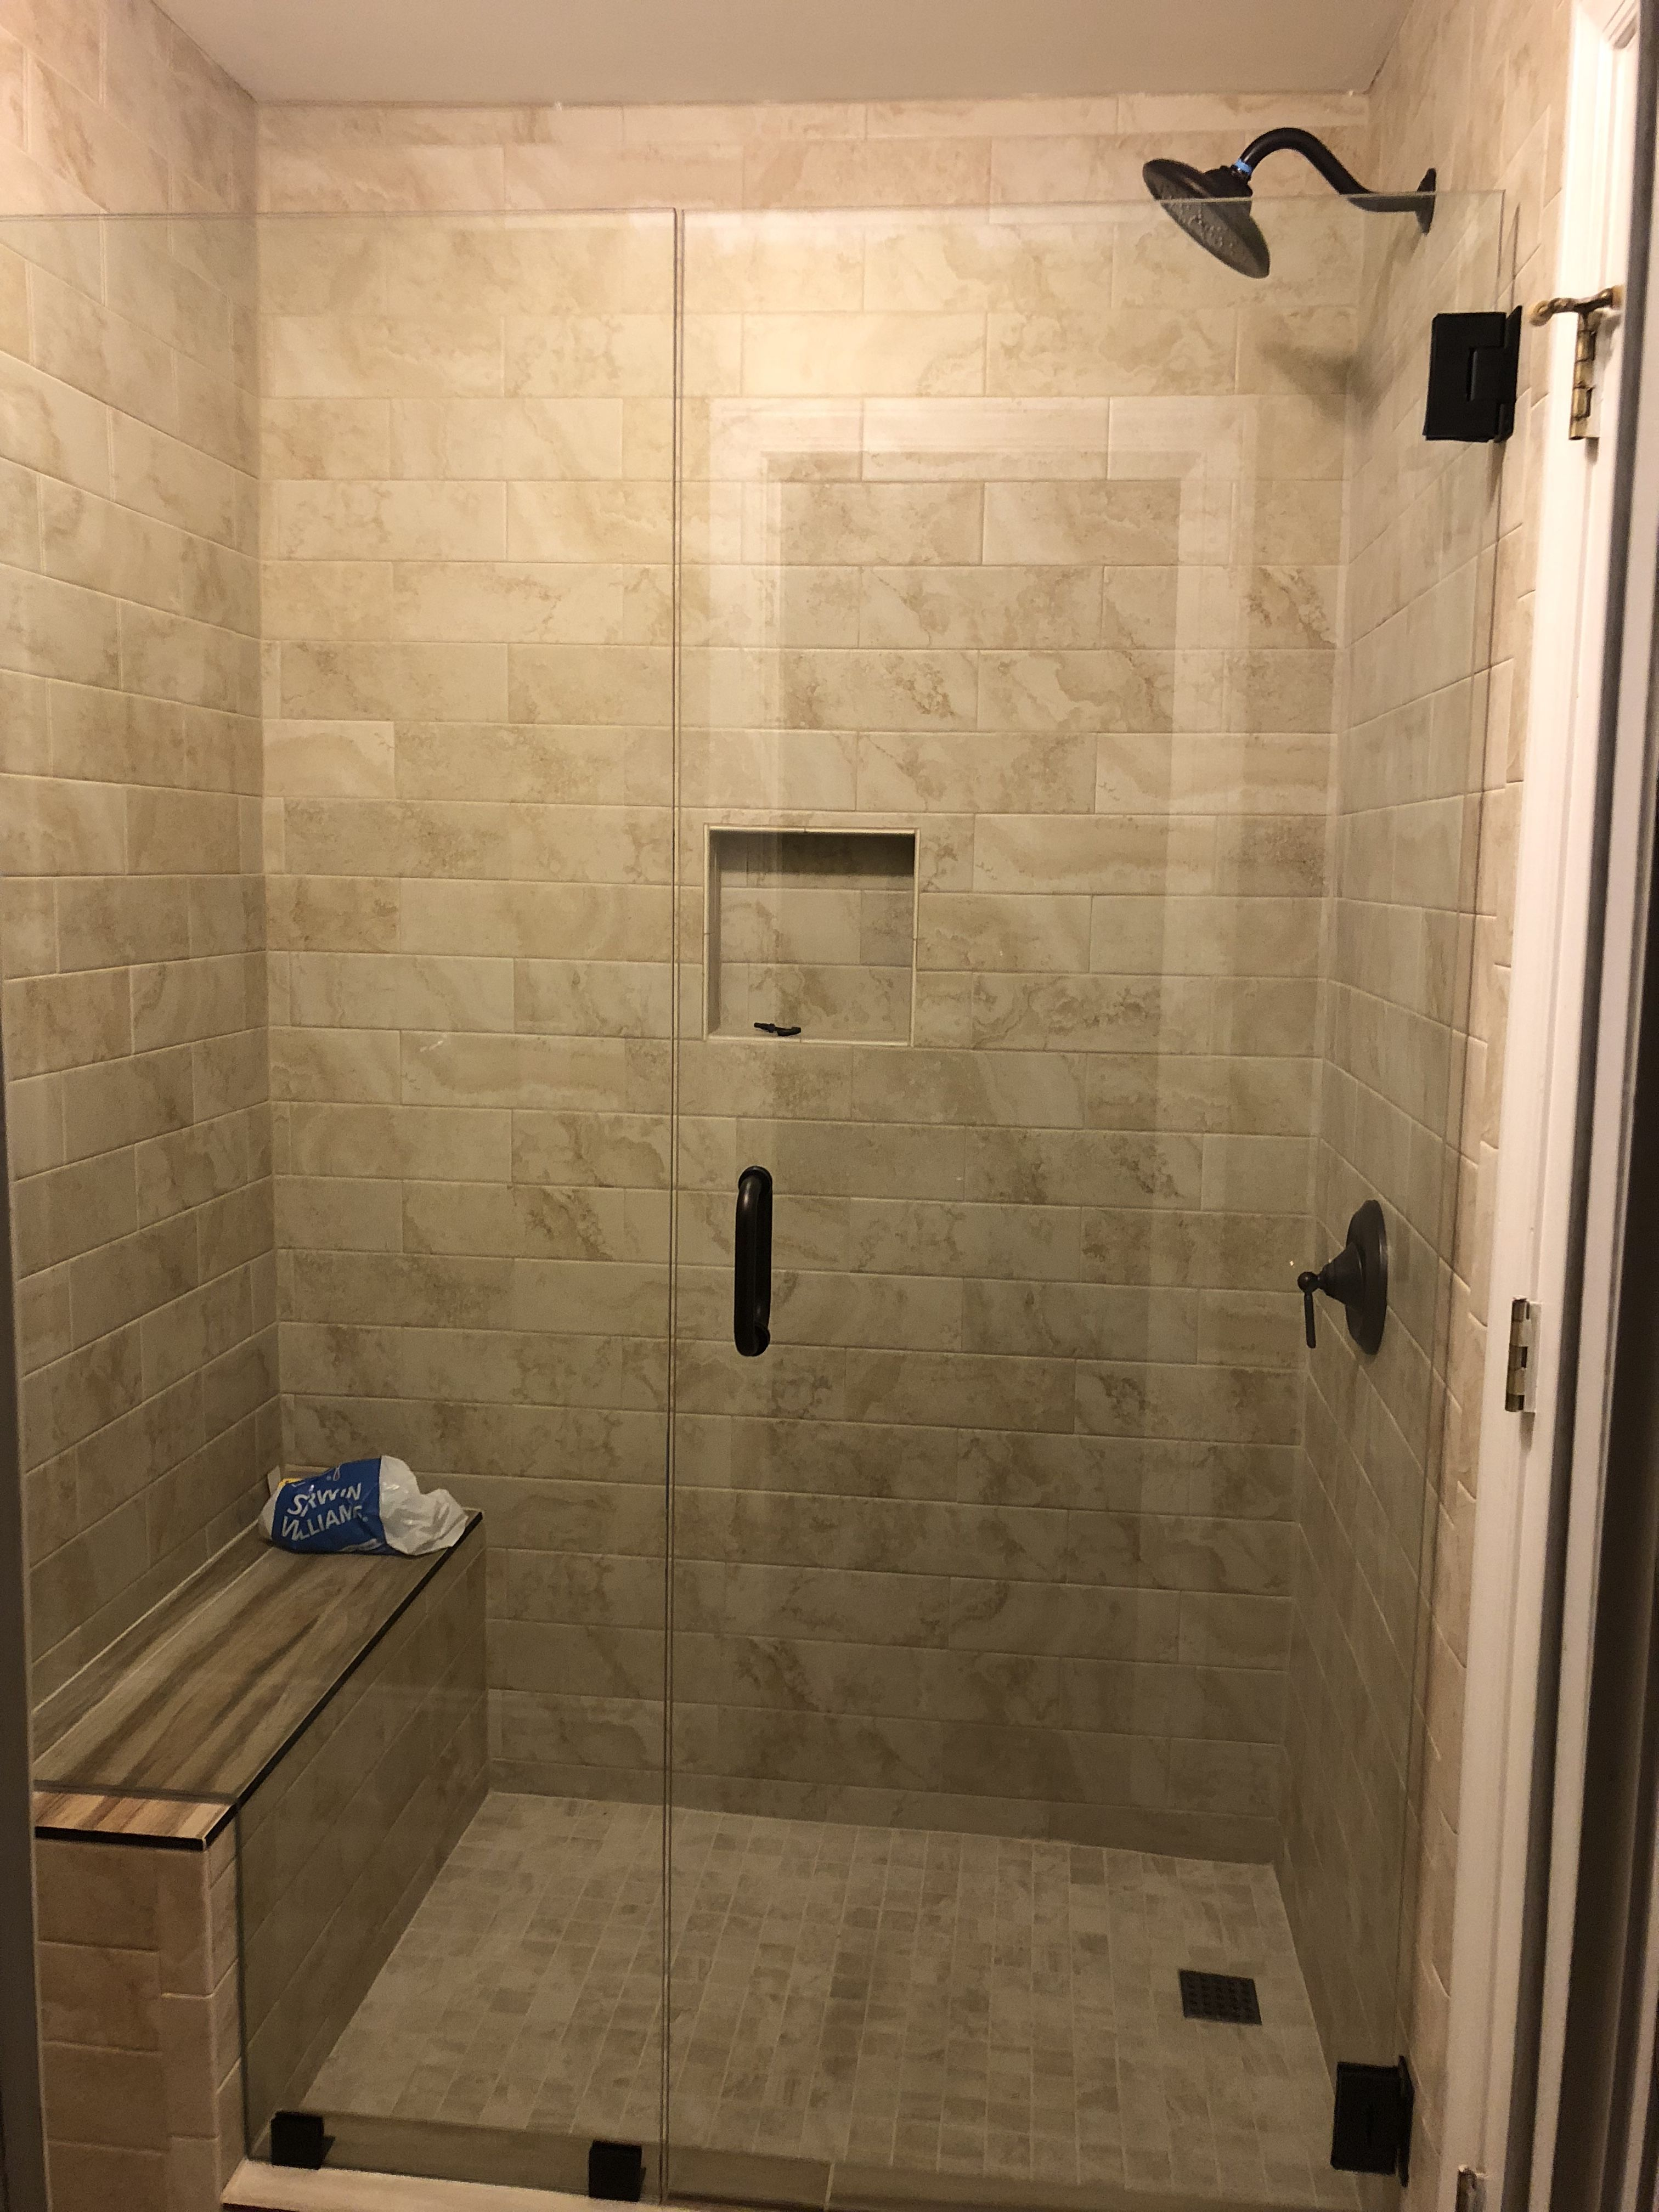 Converted From Shower Tub To Shower Only With Images Tub To